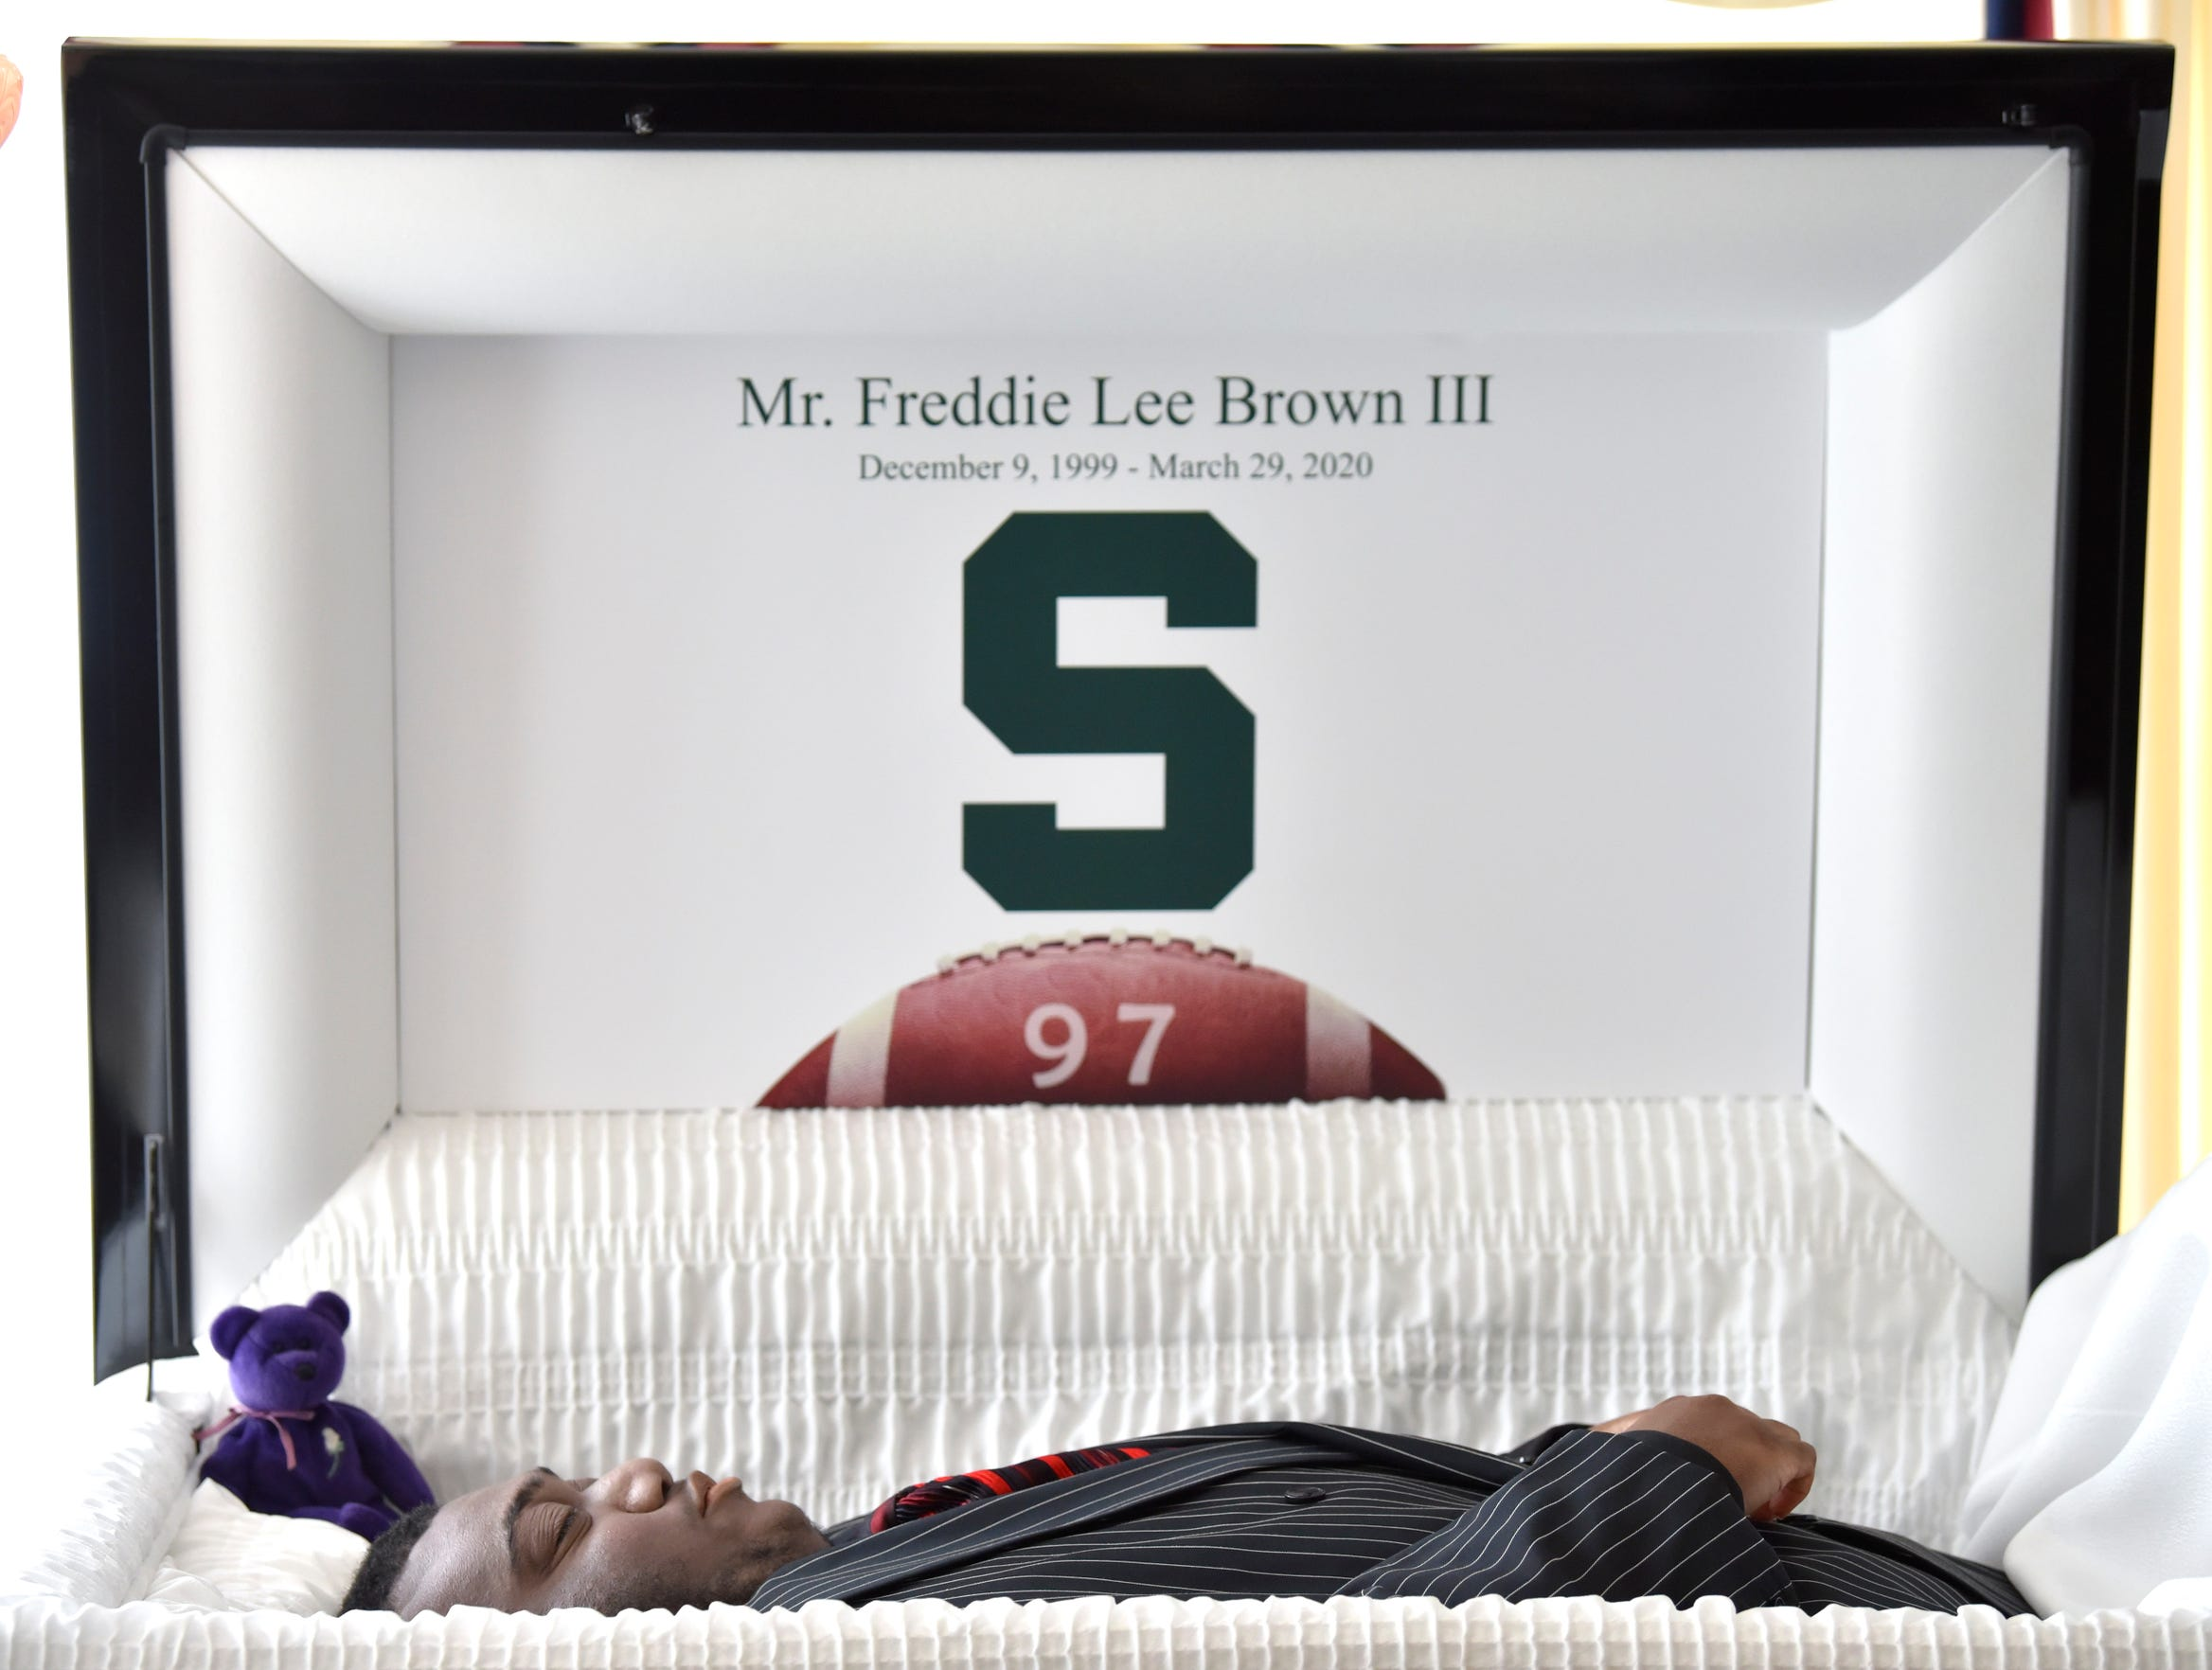 """A Michigan State University block """"S"""" and his Grand Blanc High School No.  97 is seen on the casket lid of Freddie Lee Brown III. According to family members, Brown III dreamed of playing football at MSU as a walk-on with hopes of someday playing in the NFL."""